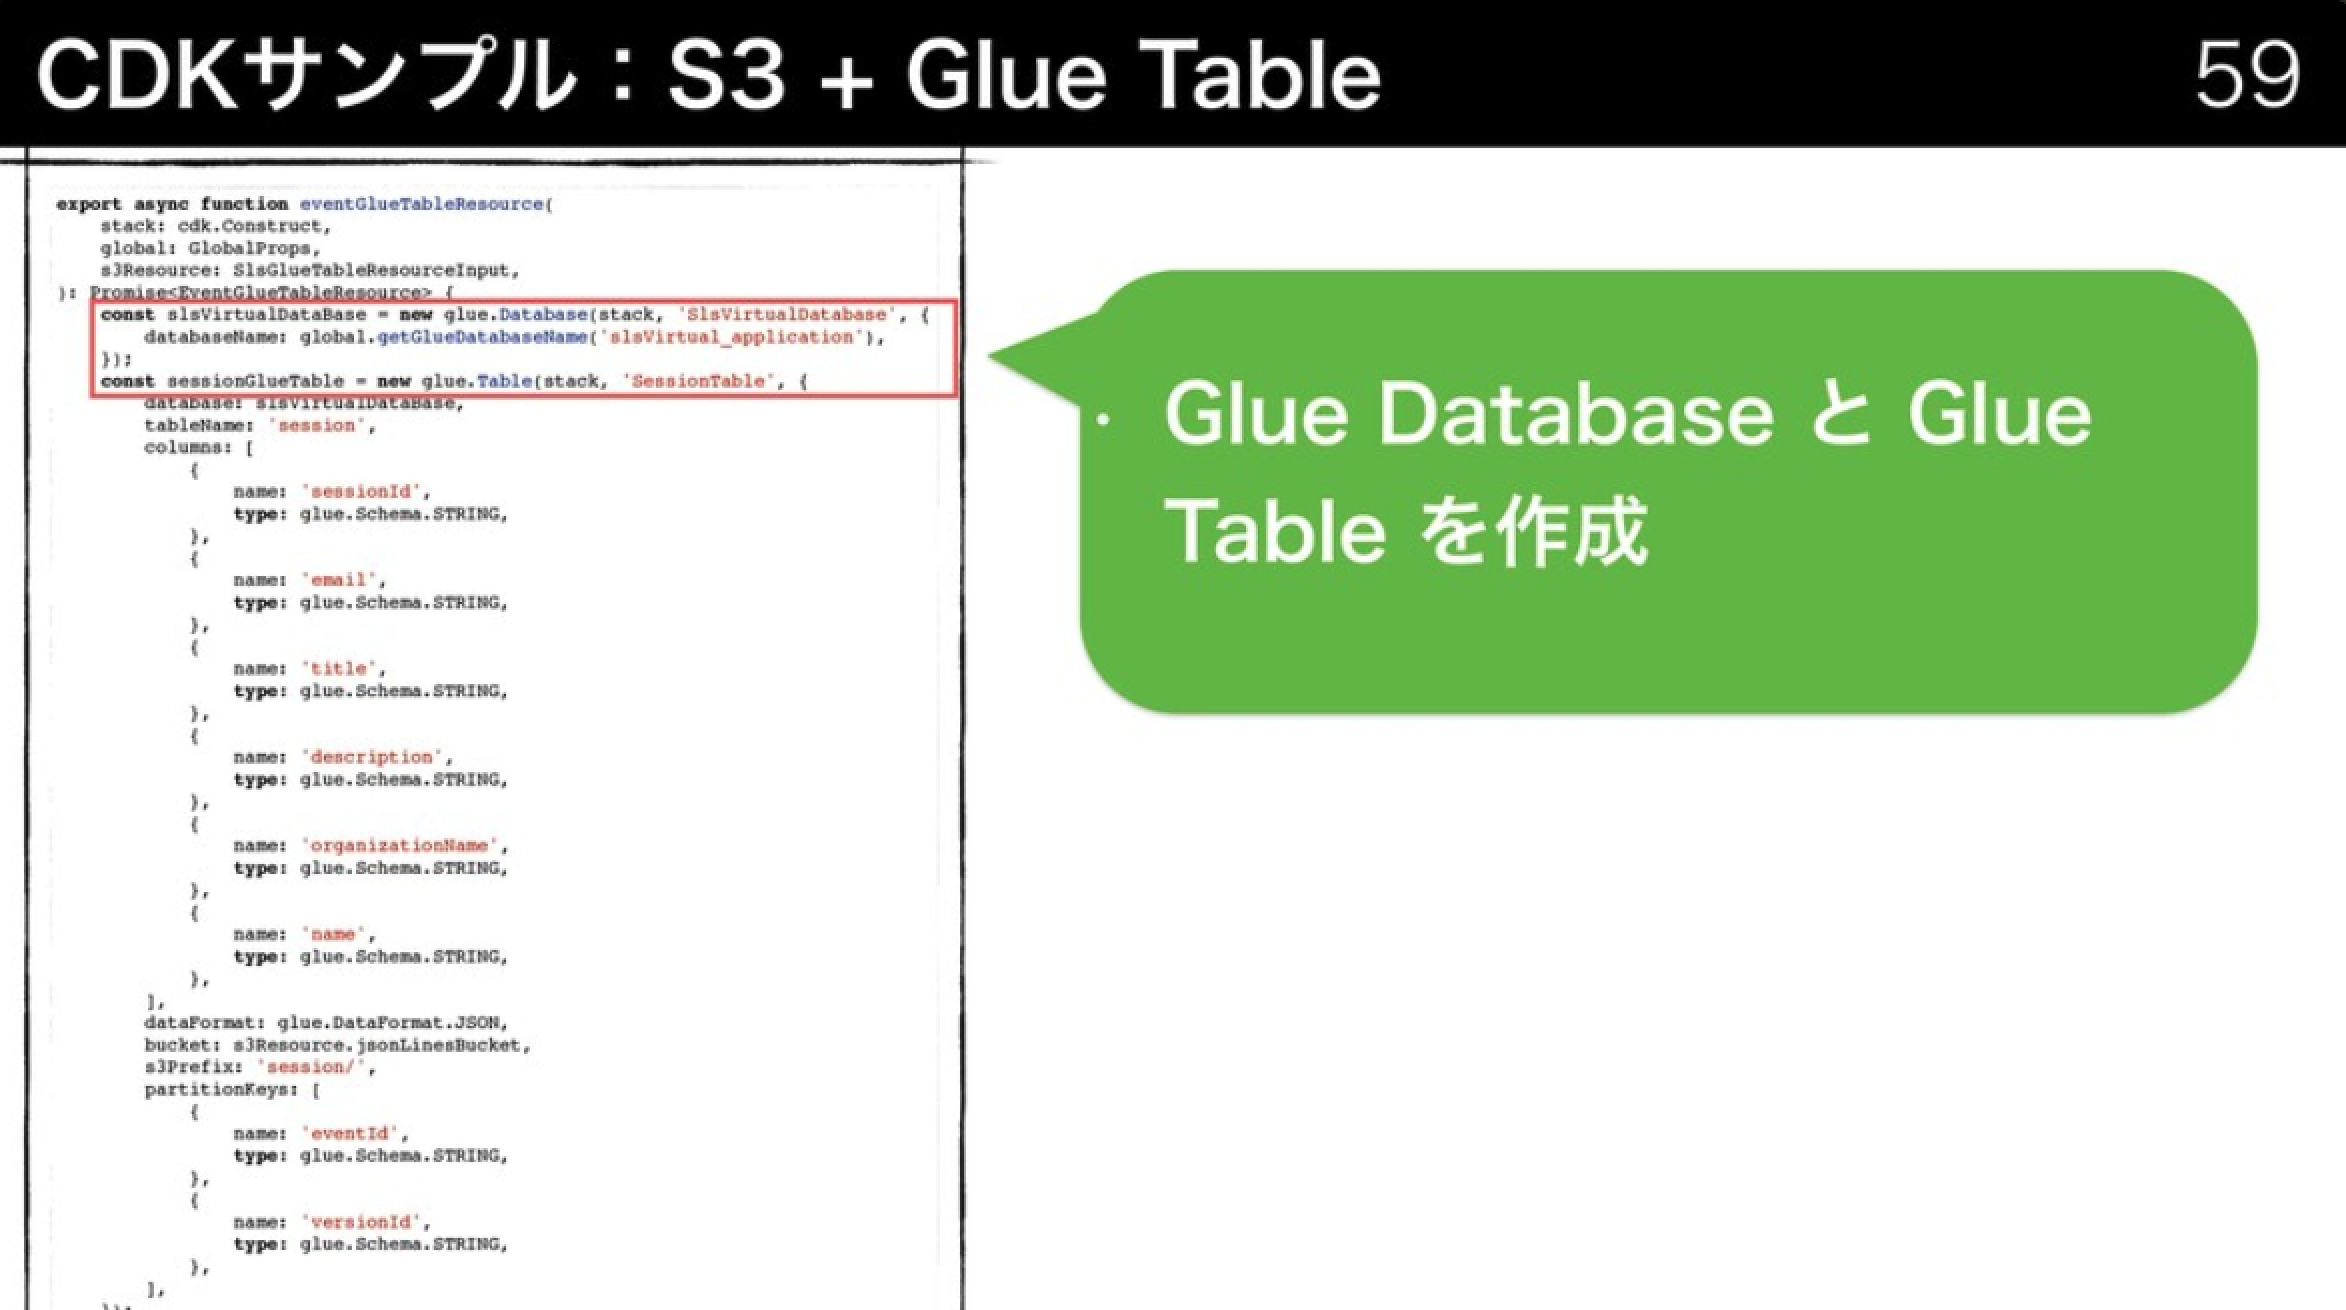 cdk_s3_glue_table.png